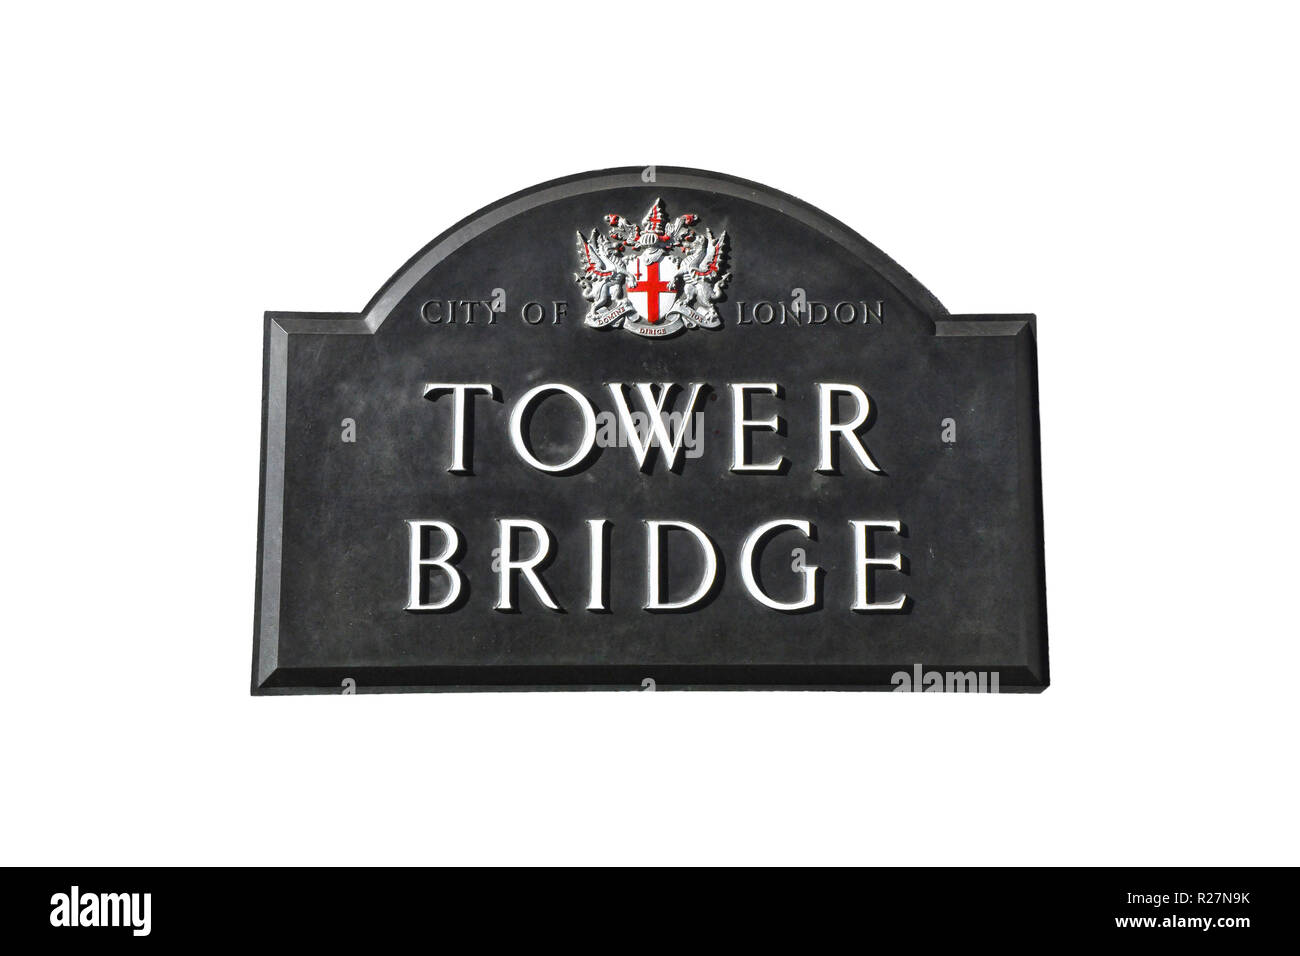 Tower Bridge sign in London against white background - Stock Image